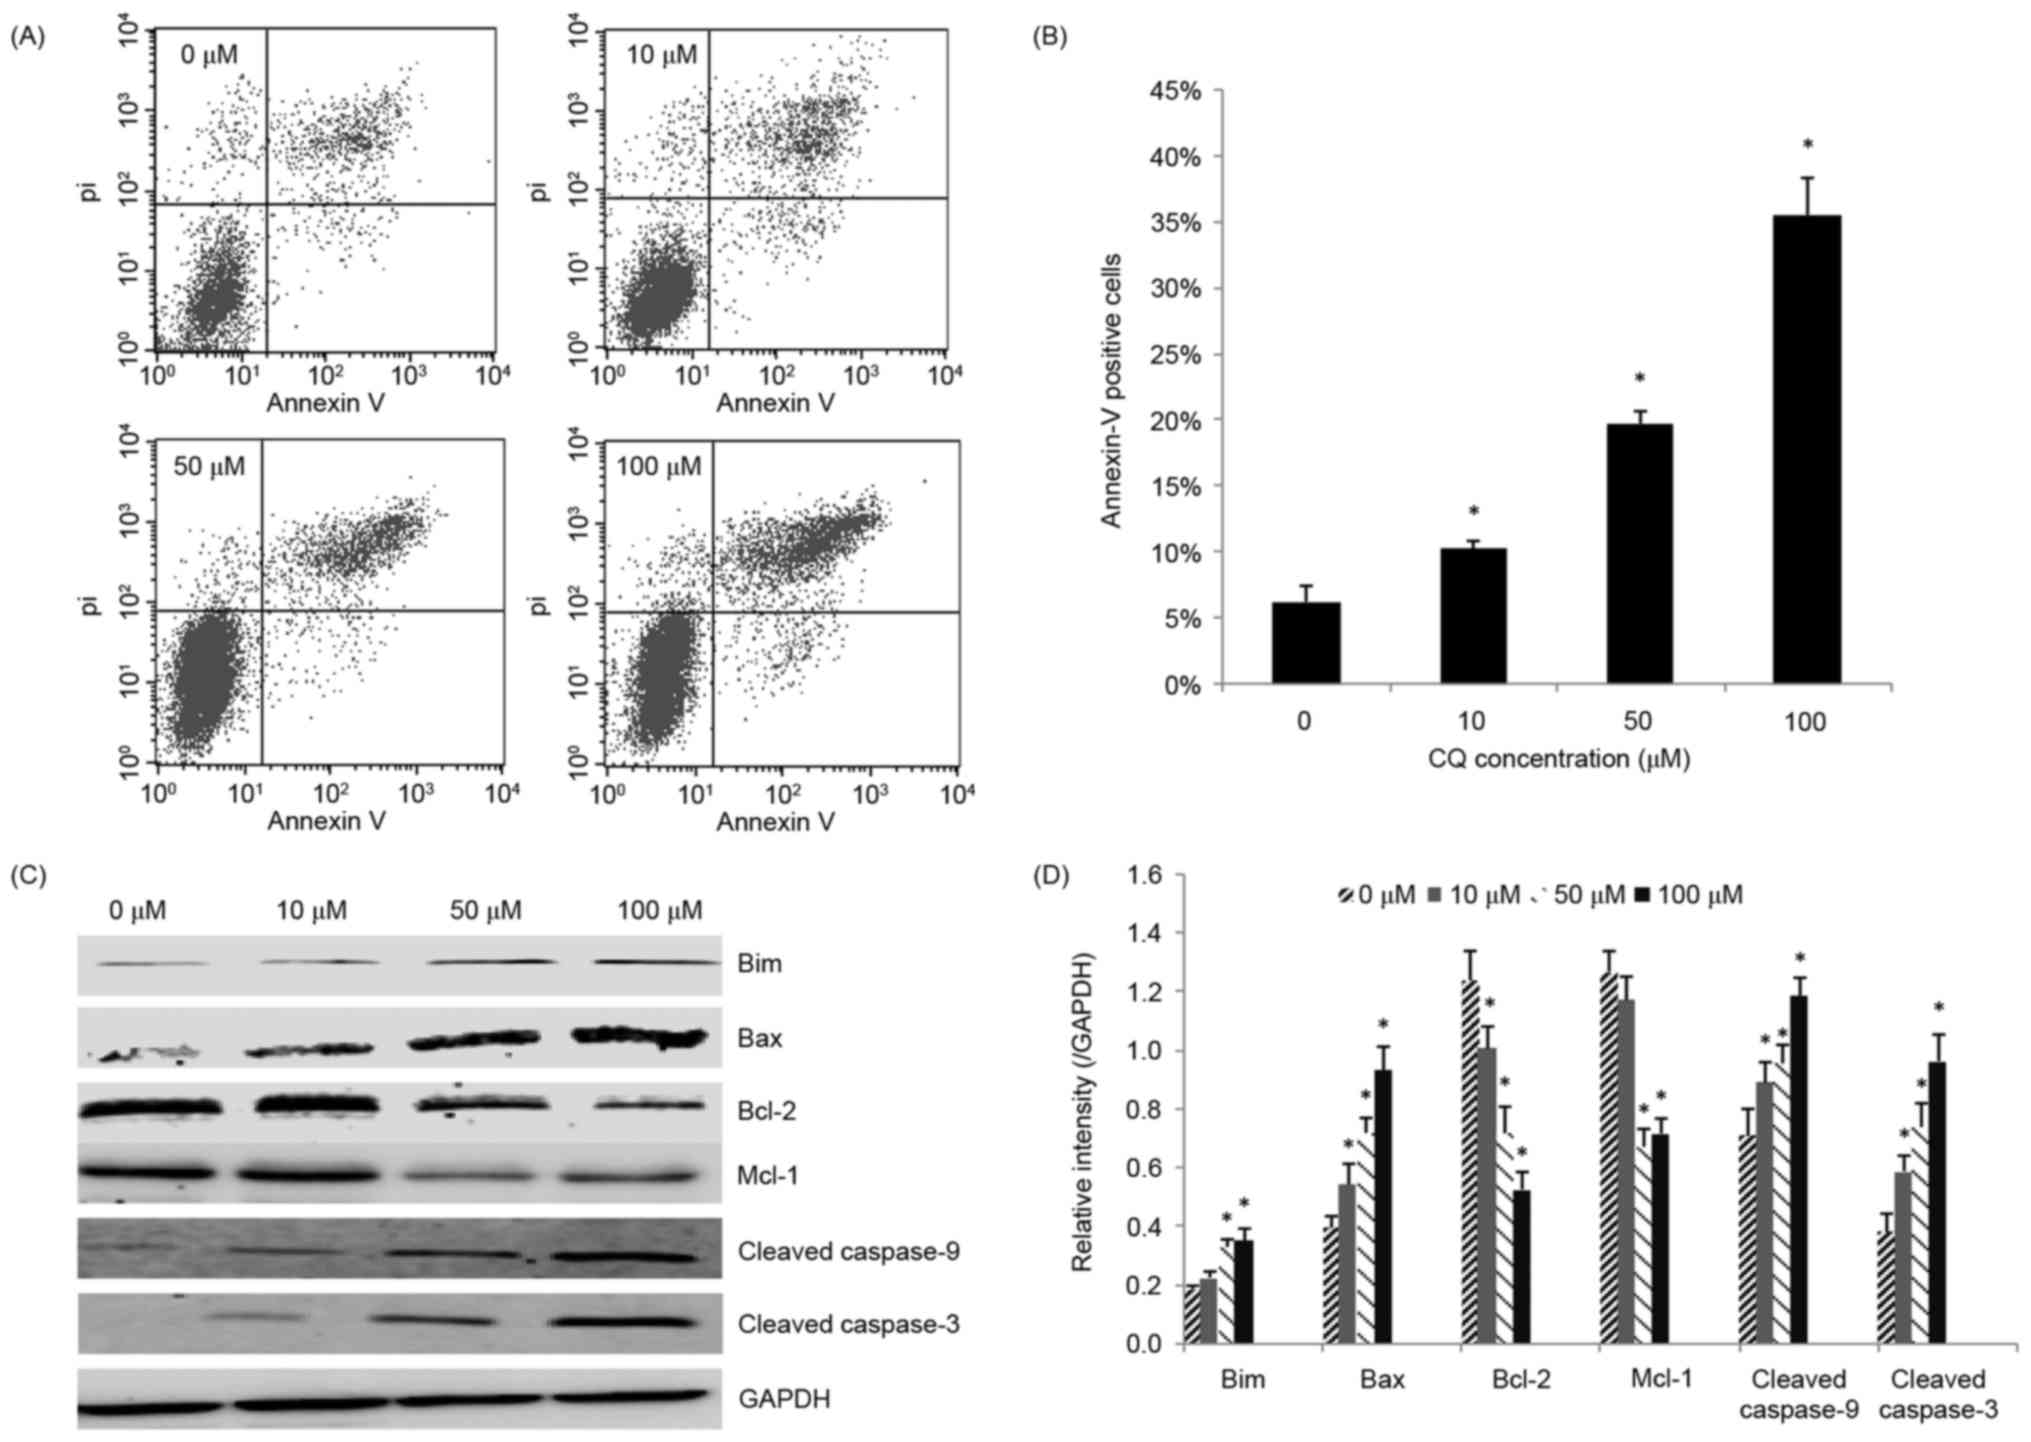 Chloroquine Exerts Antitumor Effects On Nb4 Acute Promyelocytic Lt Pro Dual Function Dark 02r 14 Gr Figure 2 Apoptosis Of Cells Induced By Cq A Were Incubated With Increasing Concentrations For 48 H And Annexin V Pi Staining Was Used To